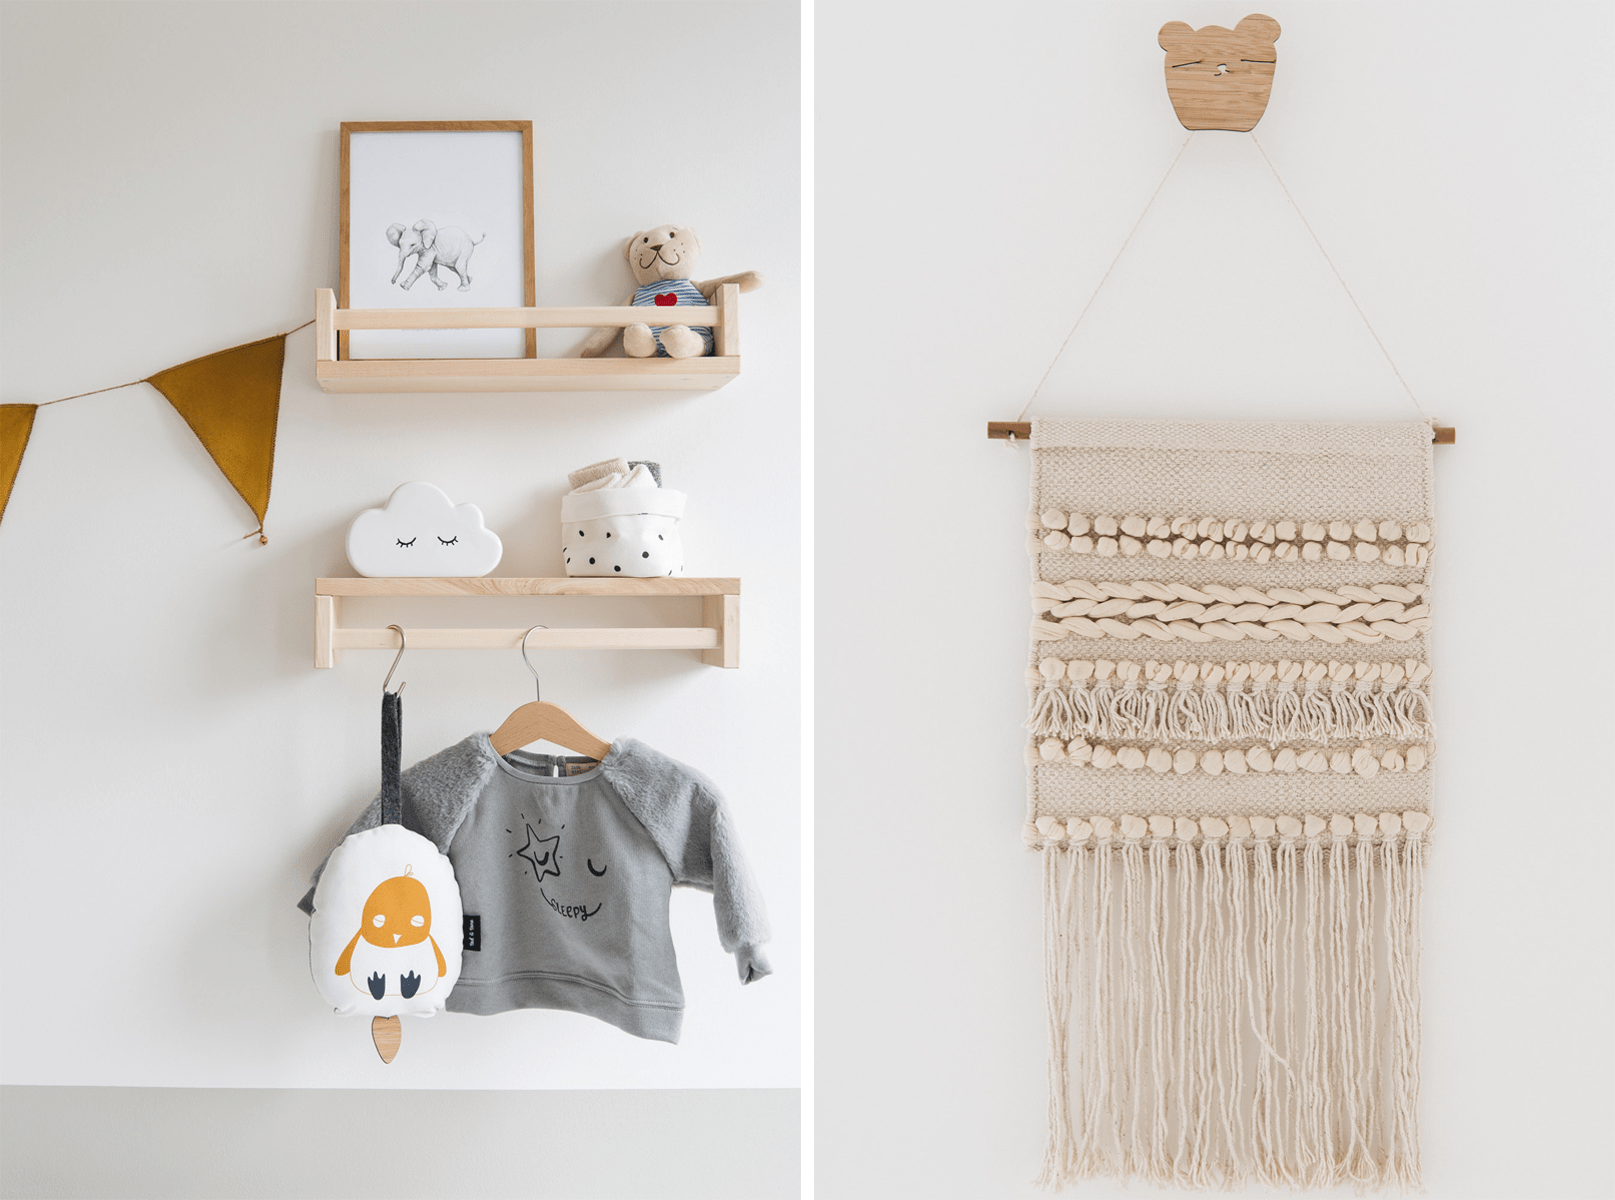 Ikea Keukenkastjes Boven Remade With Love Lifestyle Blog Over Interieur Diy En